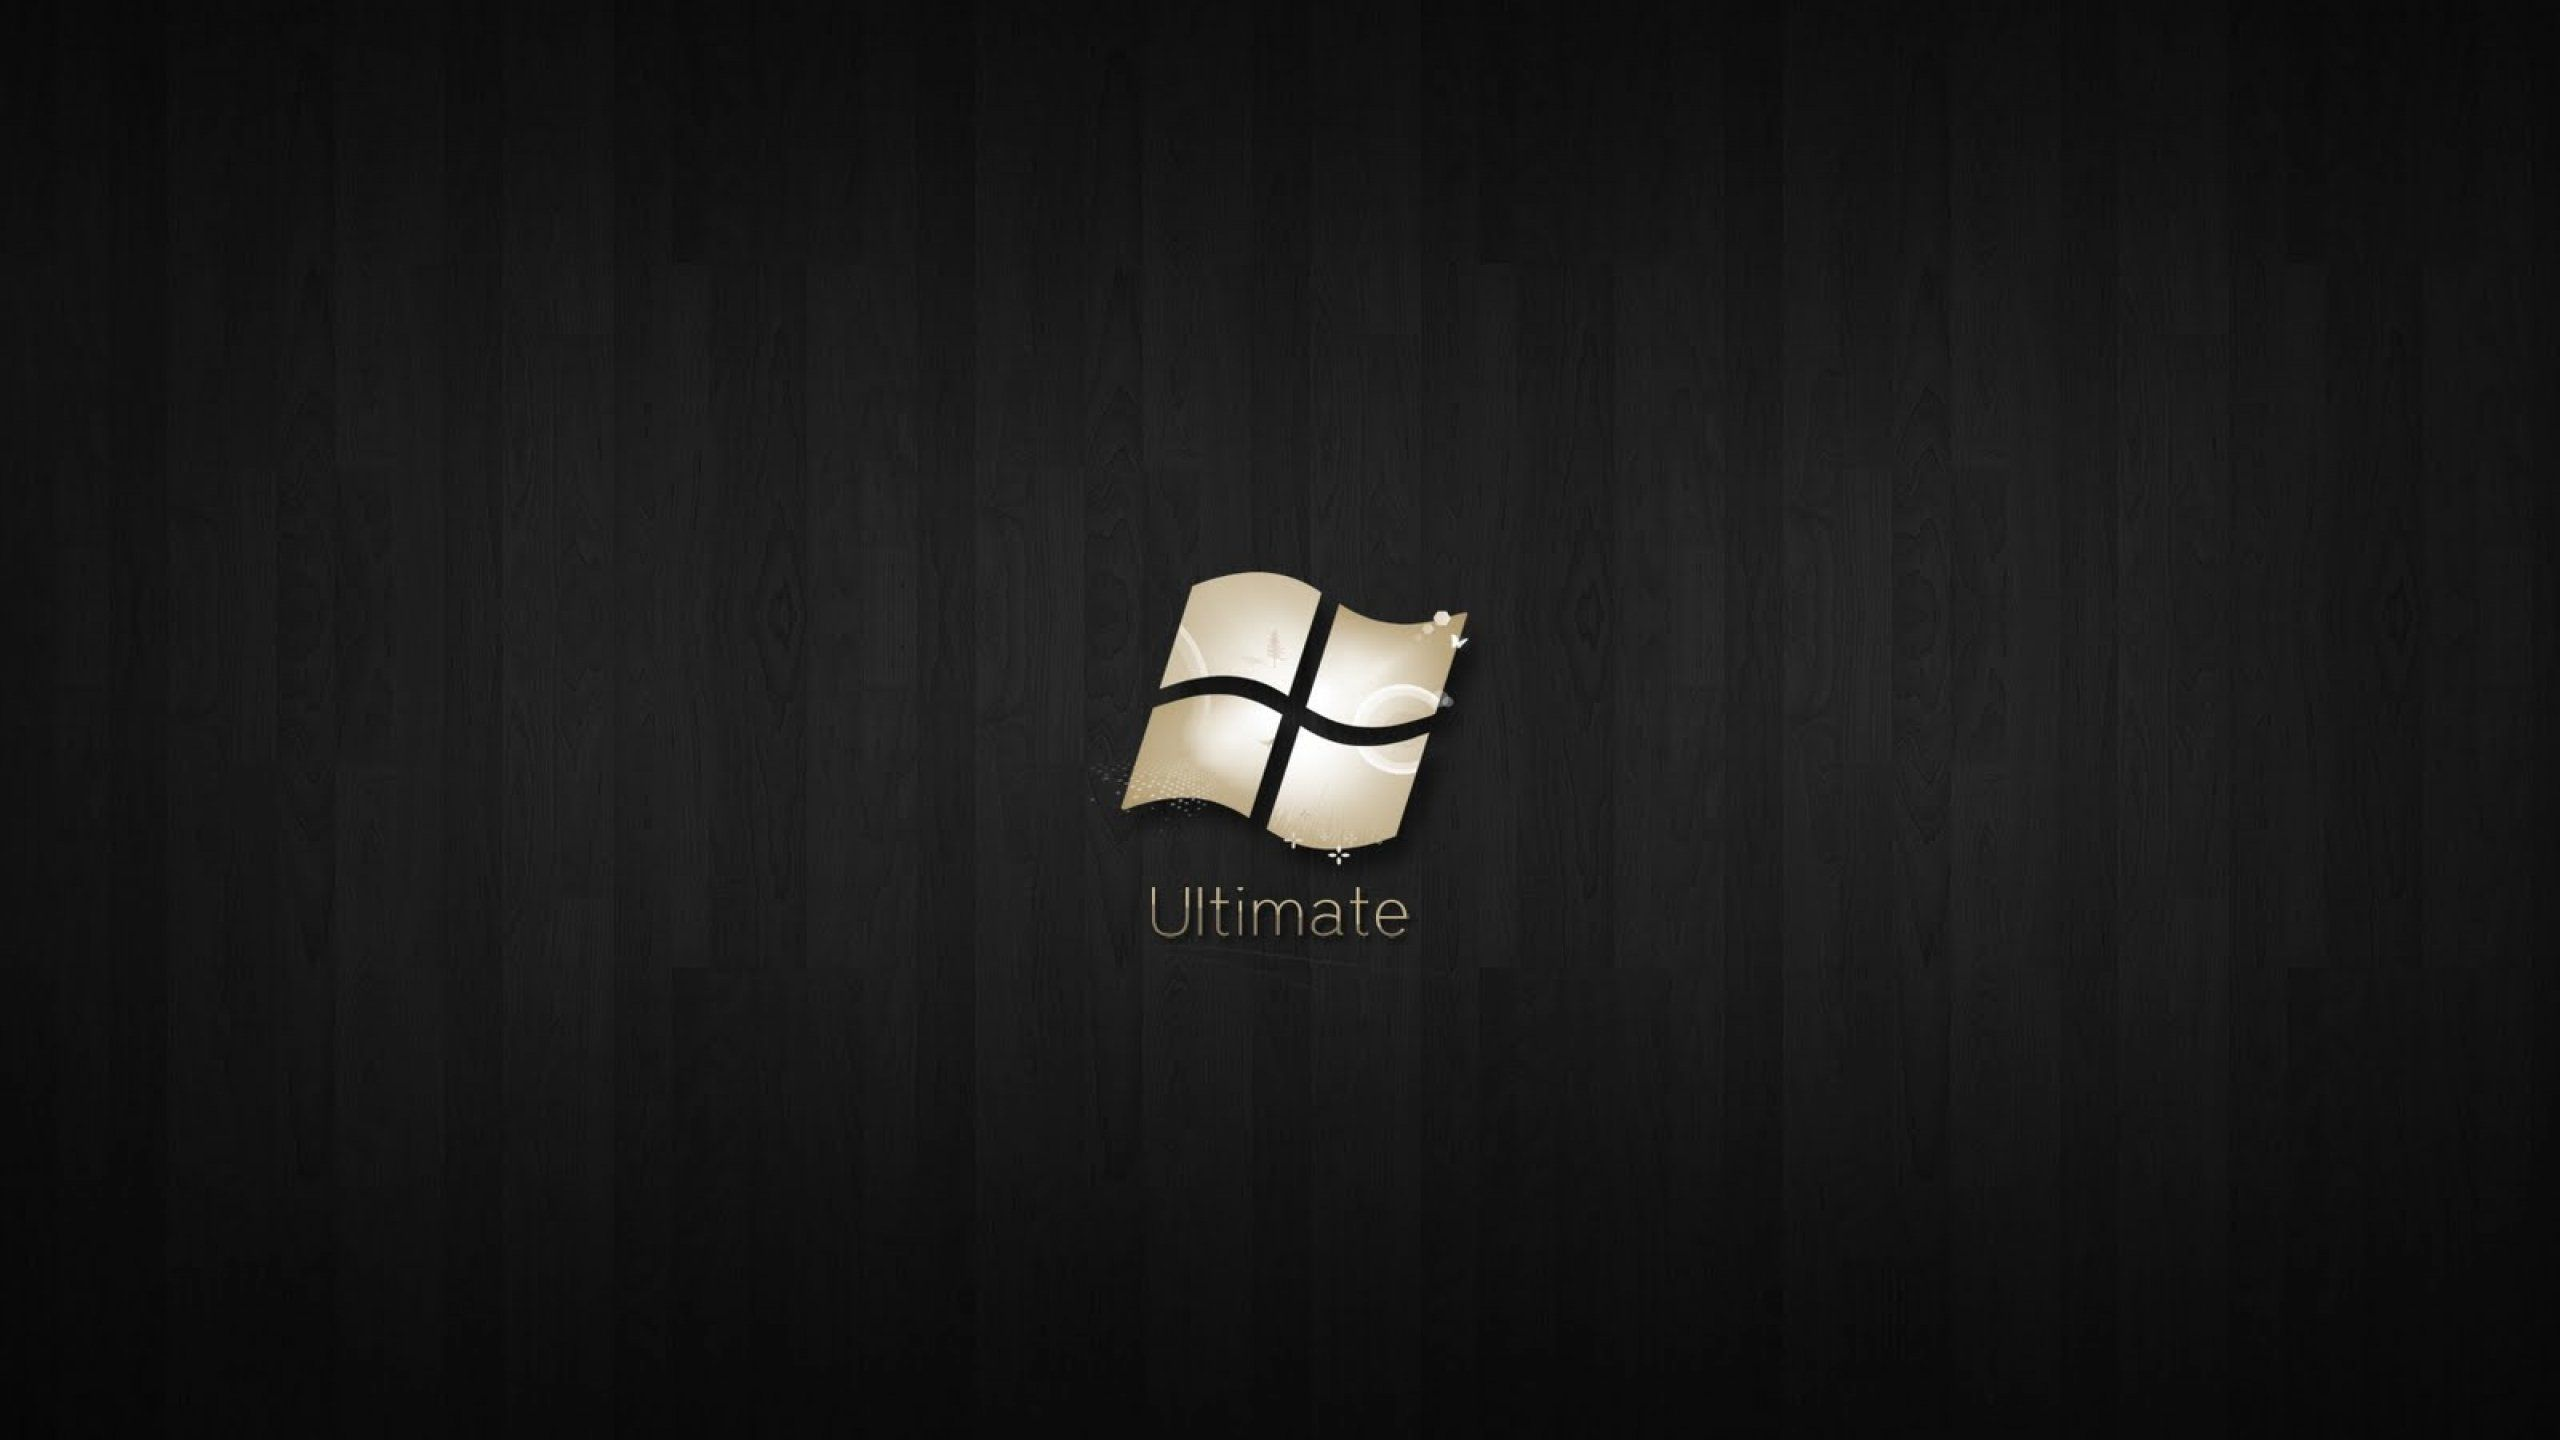 Windows 7 Professional Wallpapers Top Free Windows 7 Professional